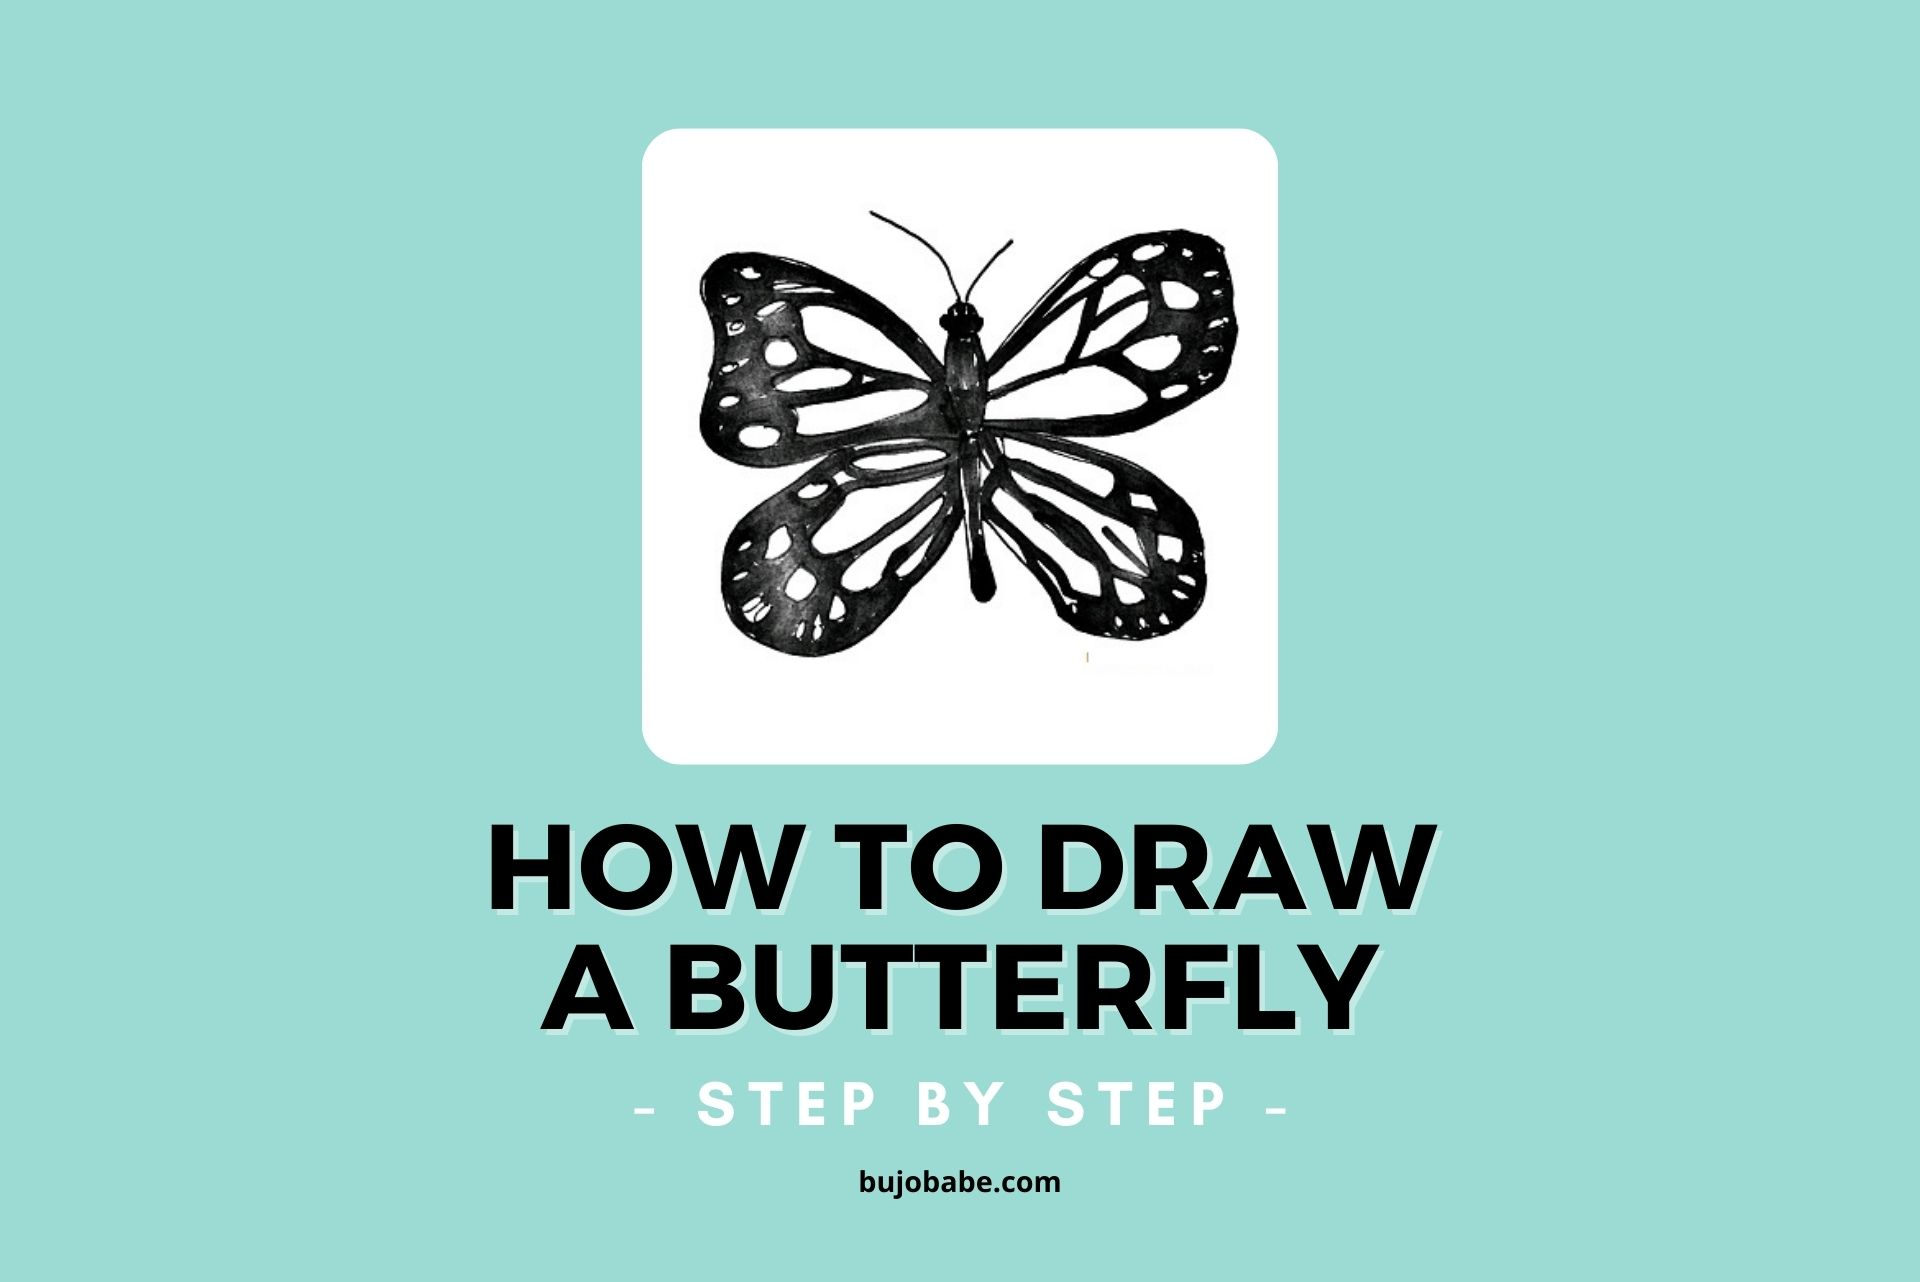 how to draw a butterfly, butterfly drawing, easy step by step tutorial